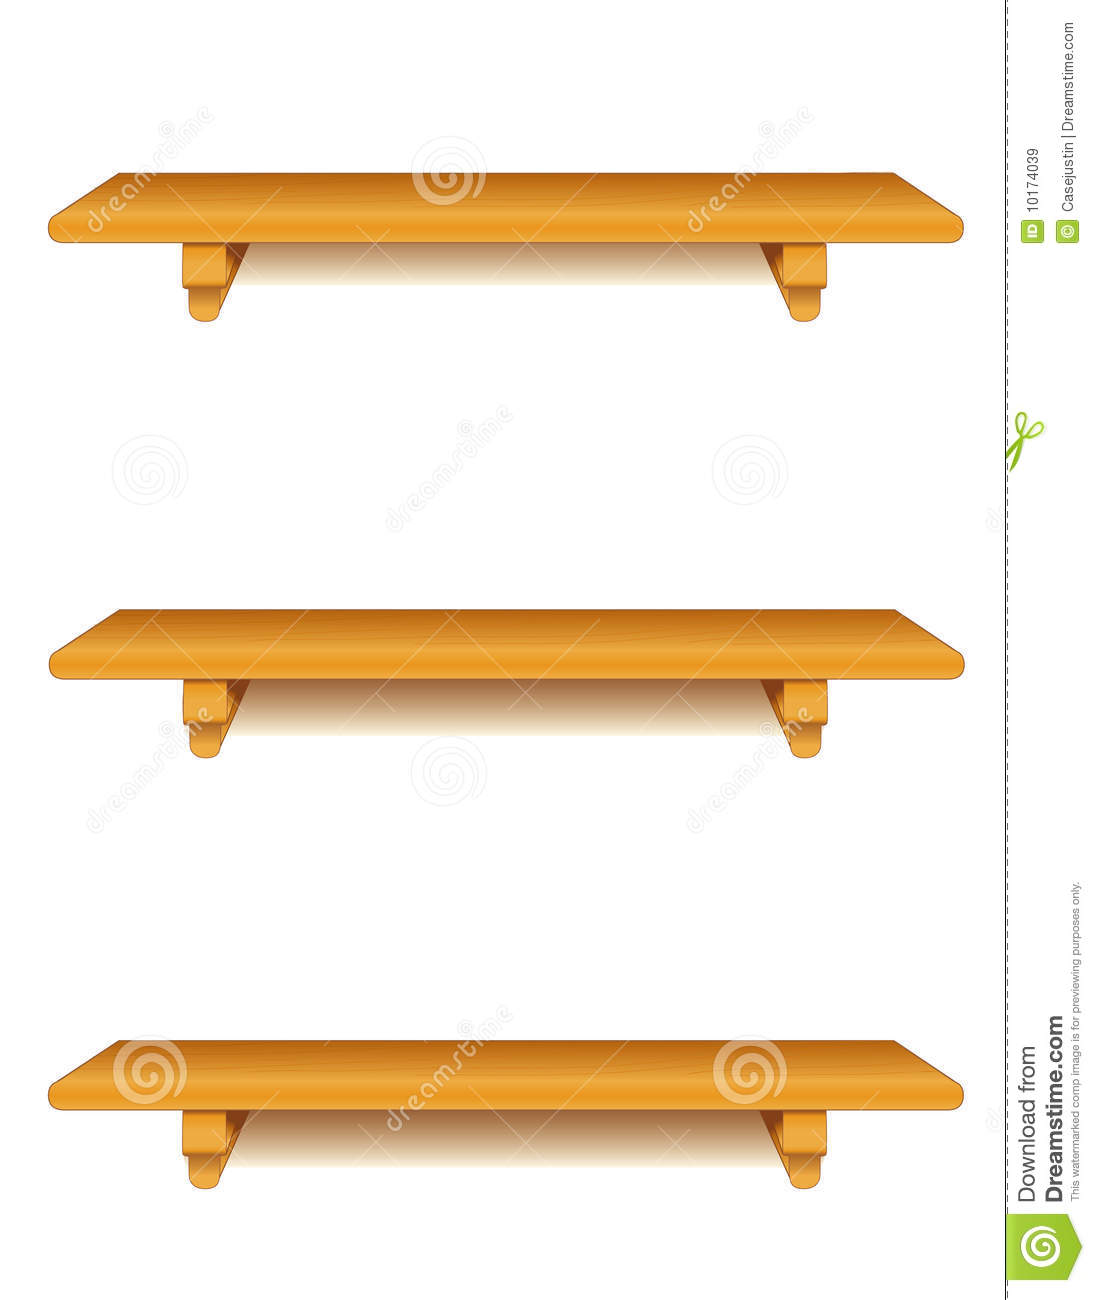 Oak Wood Shelves Royalty Free Stock Images - Image: 10174039